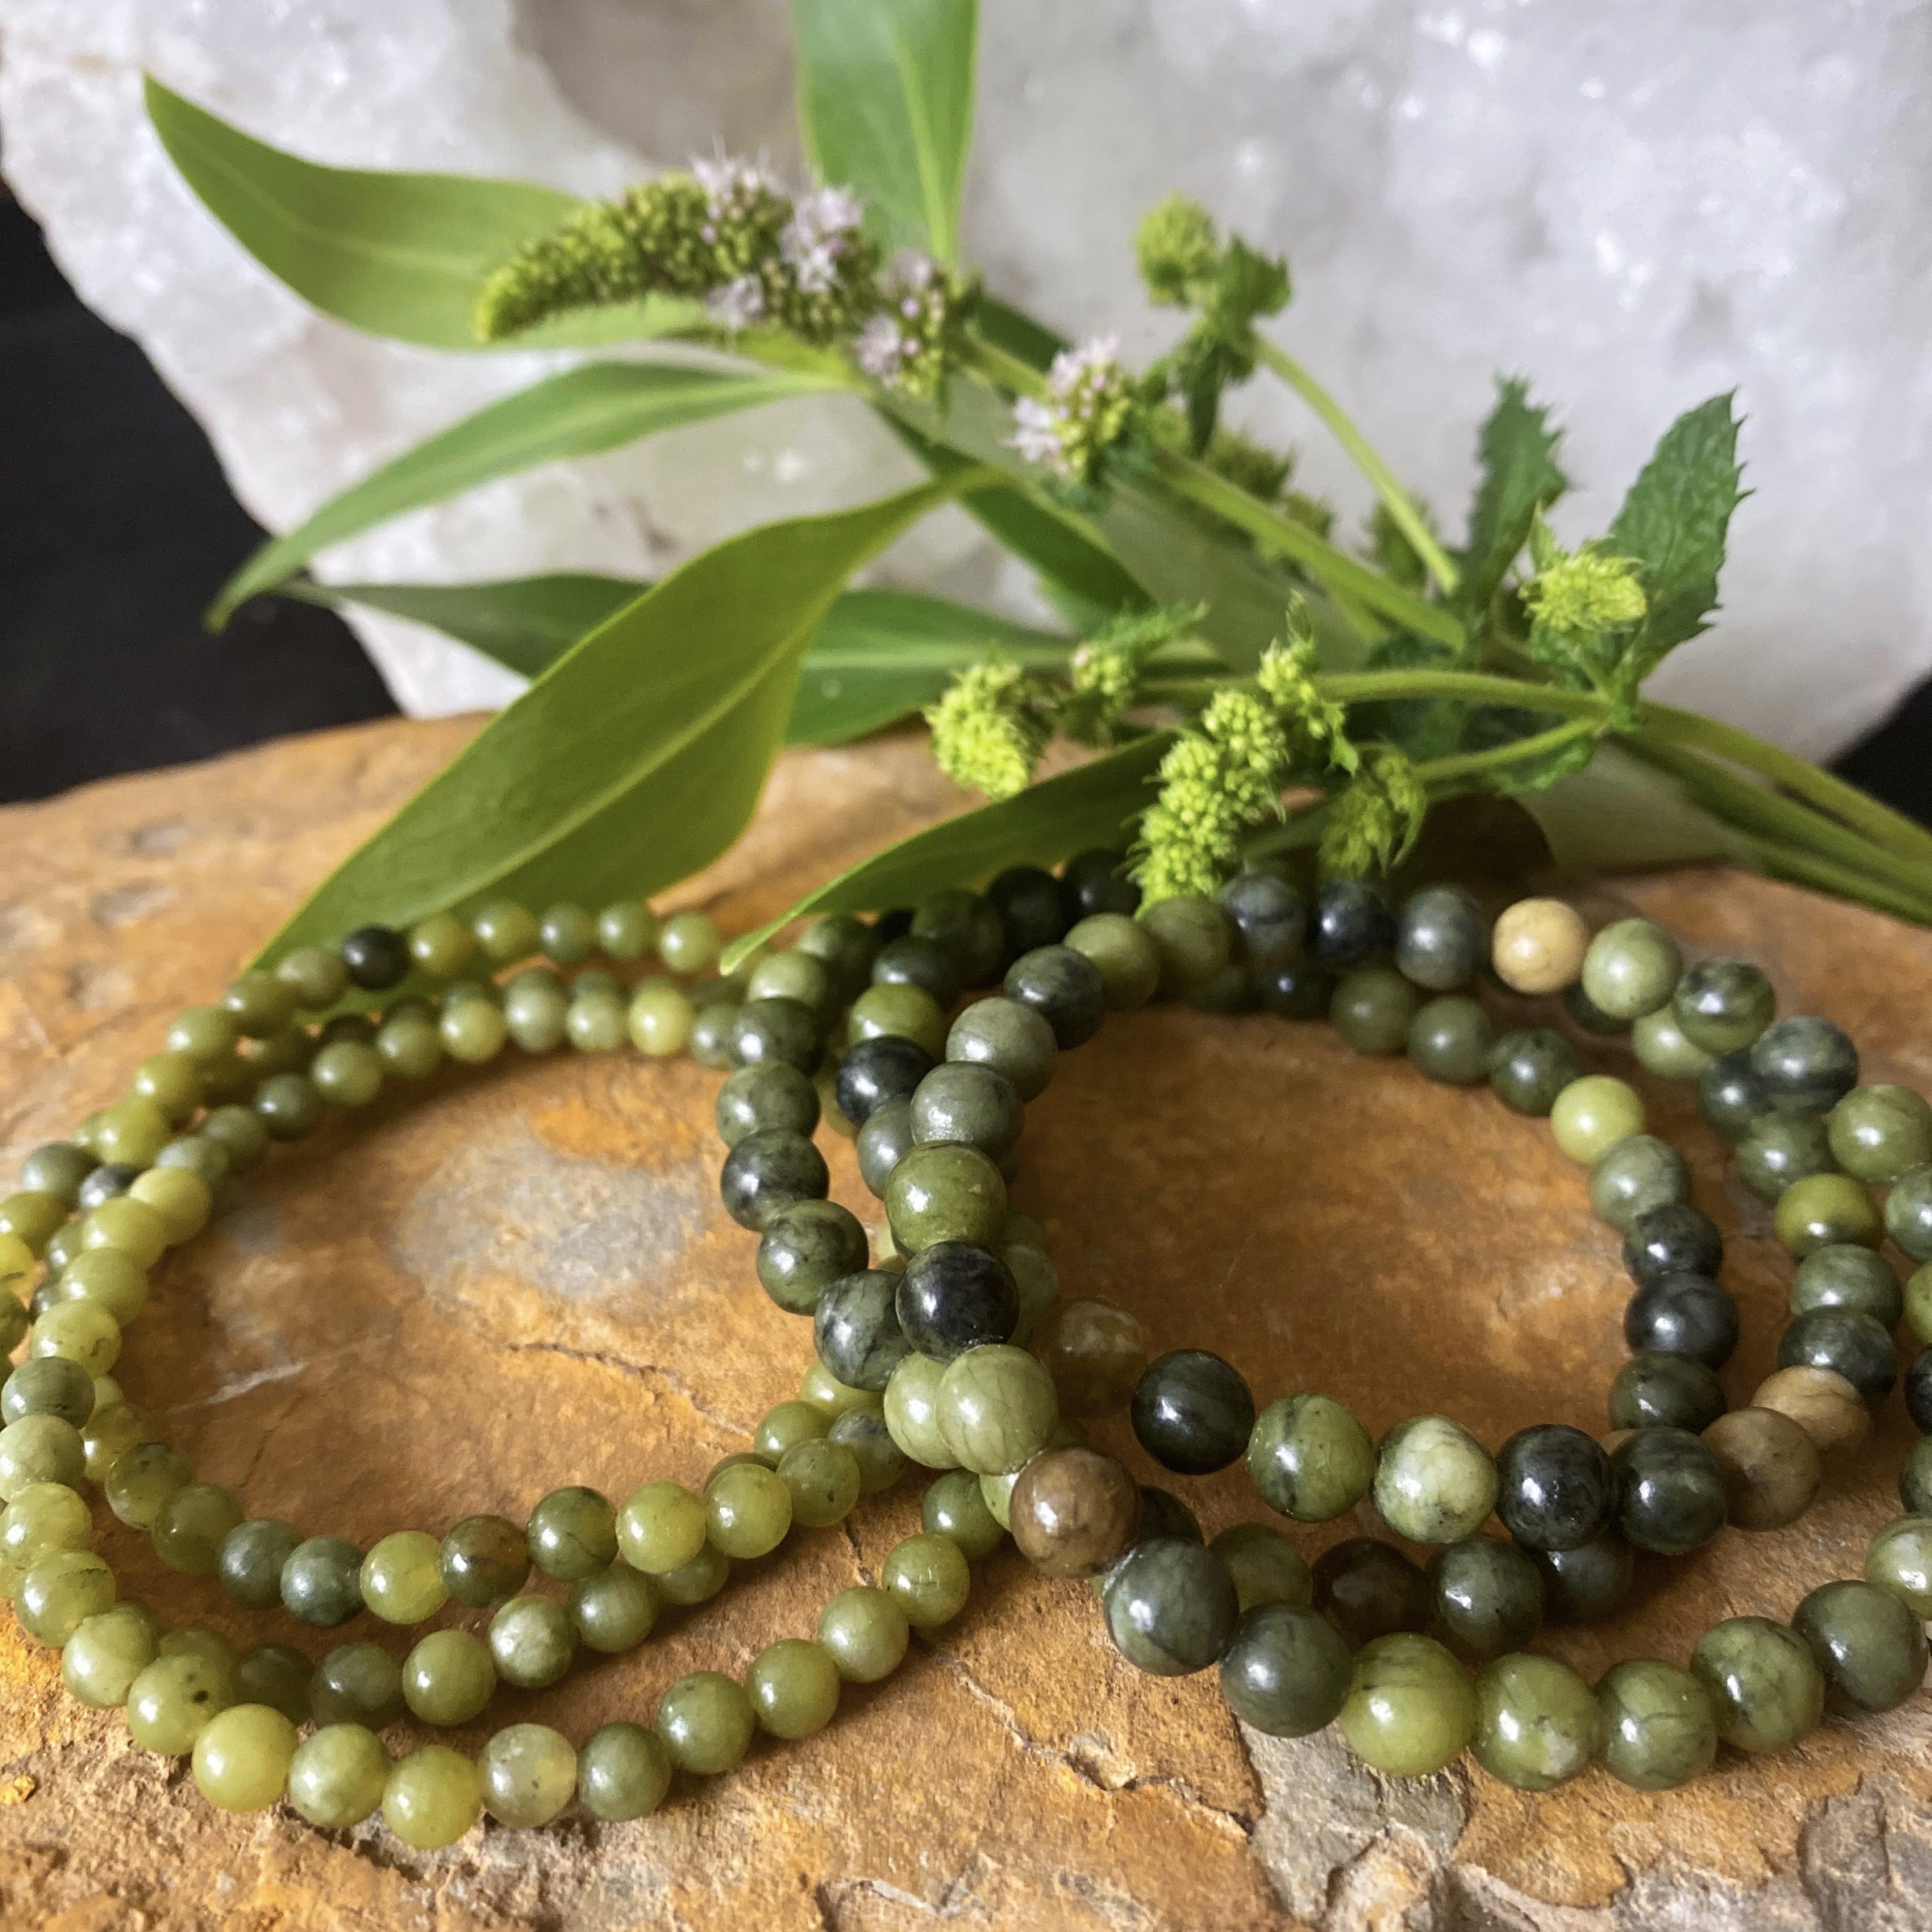 Green Lace Agate | Wholeness